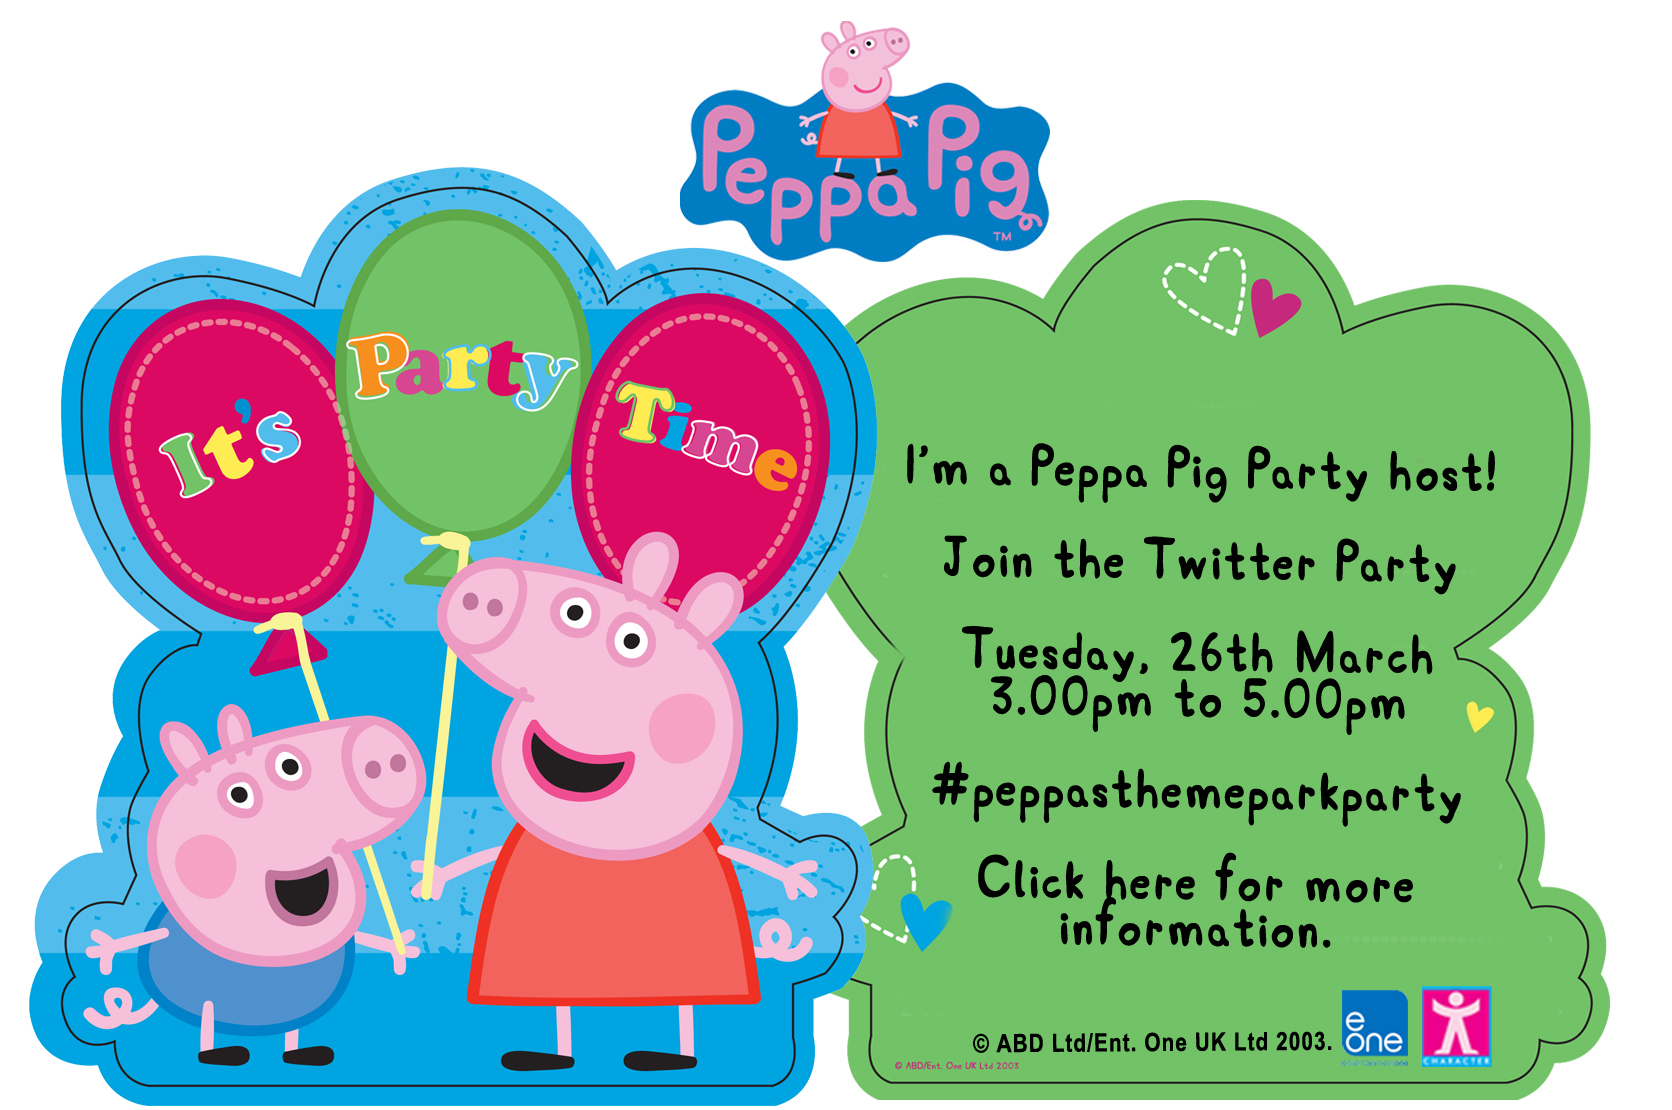 Peppa Pig Twitter Party Invite! #peppasthemeparkparty | Blog by Baby